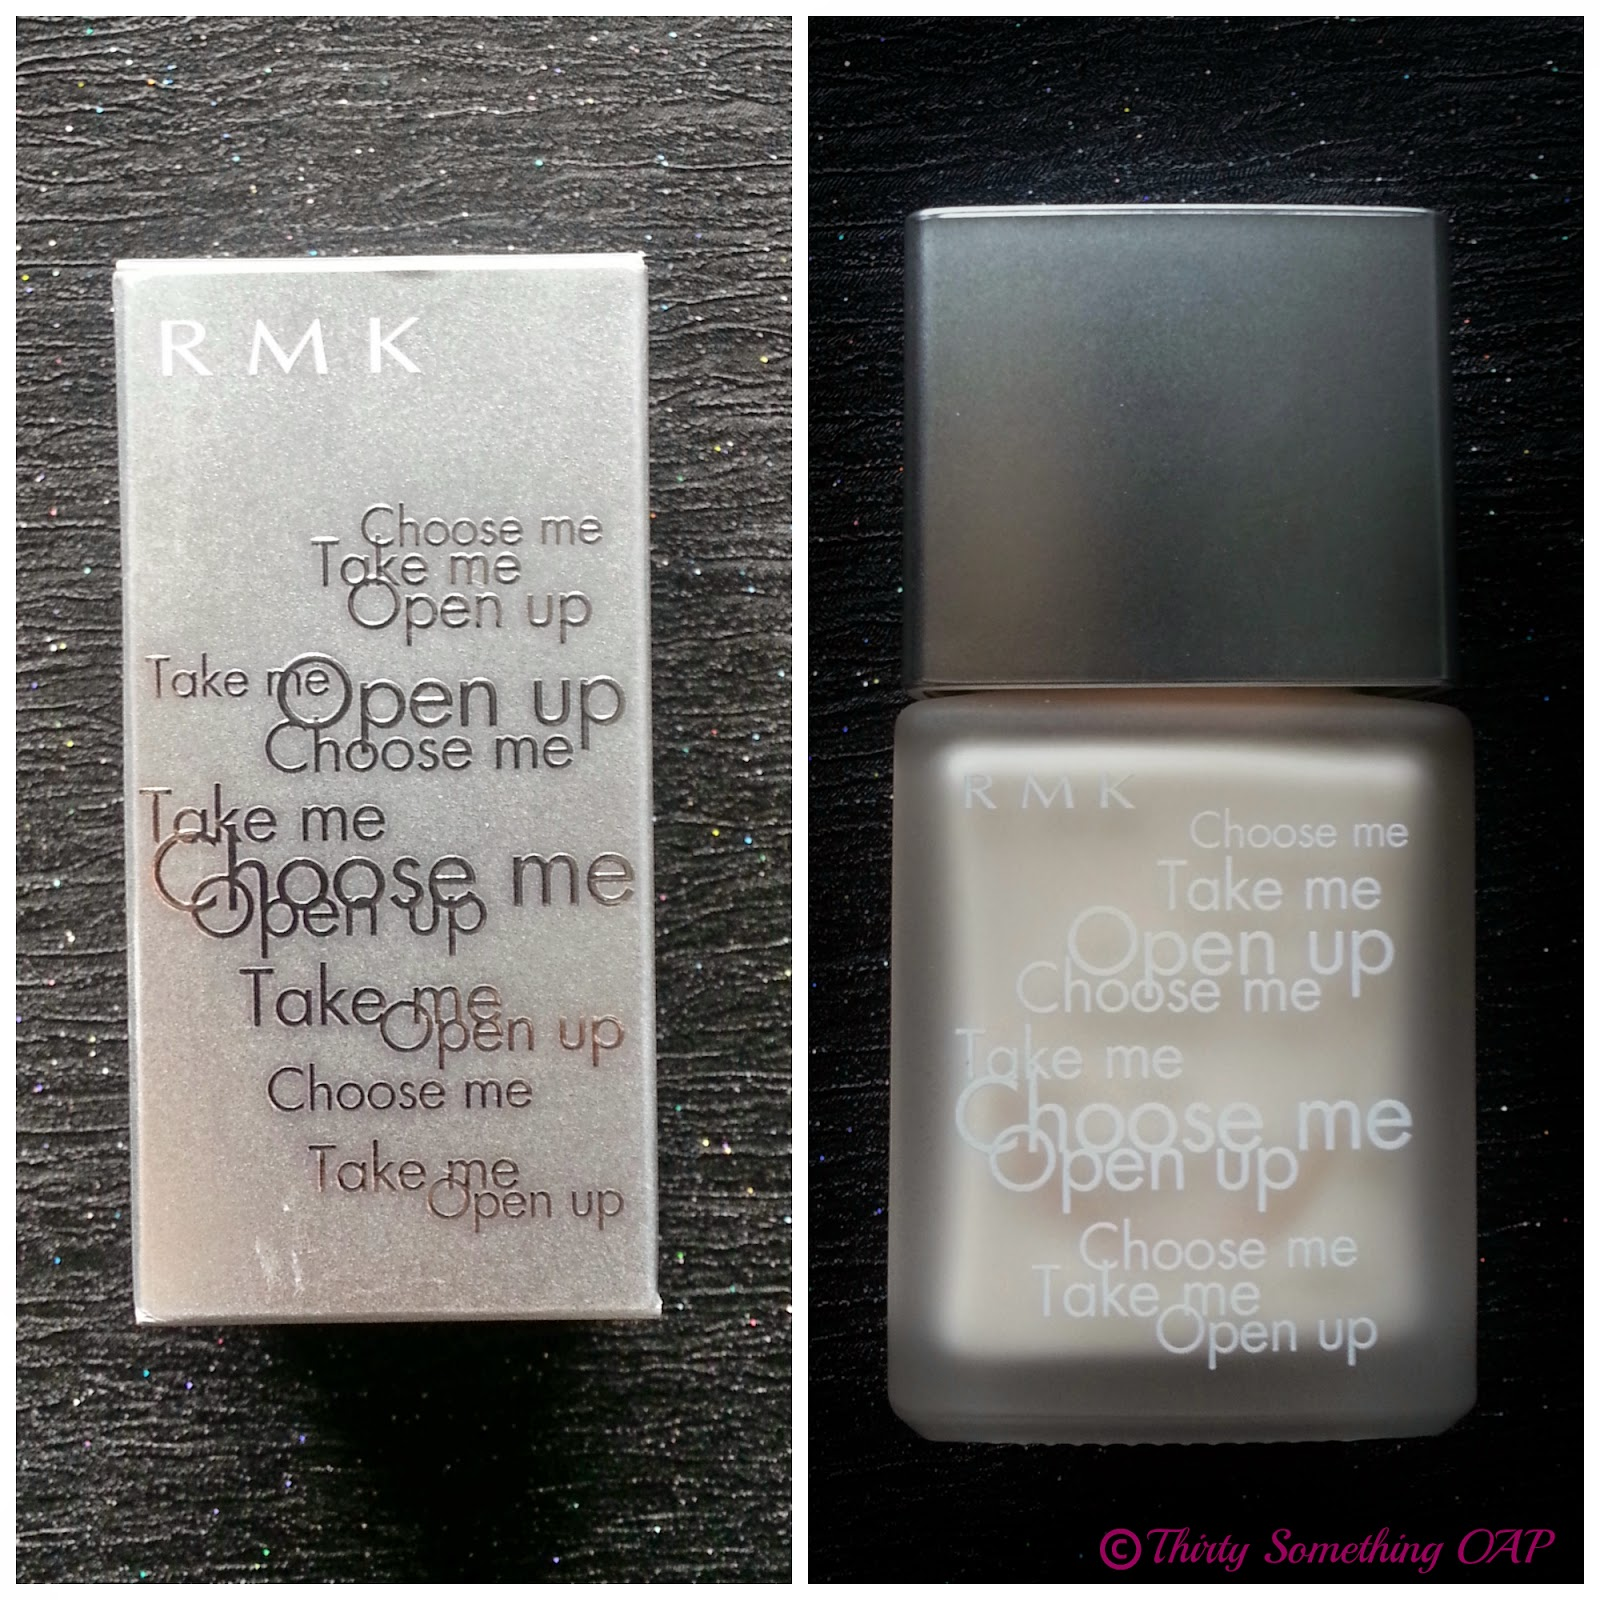 RMK makeup base